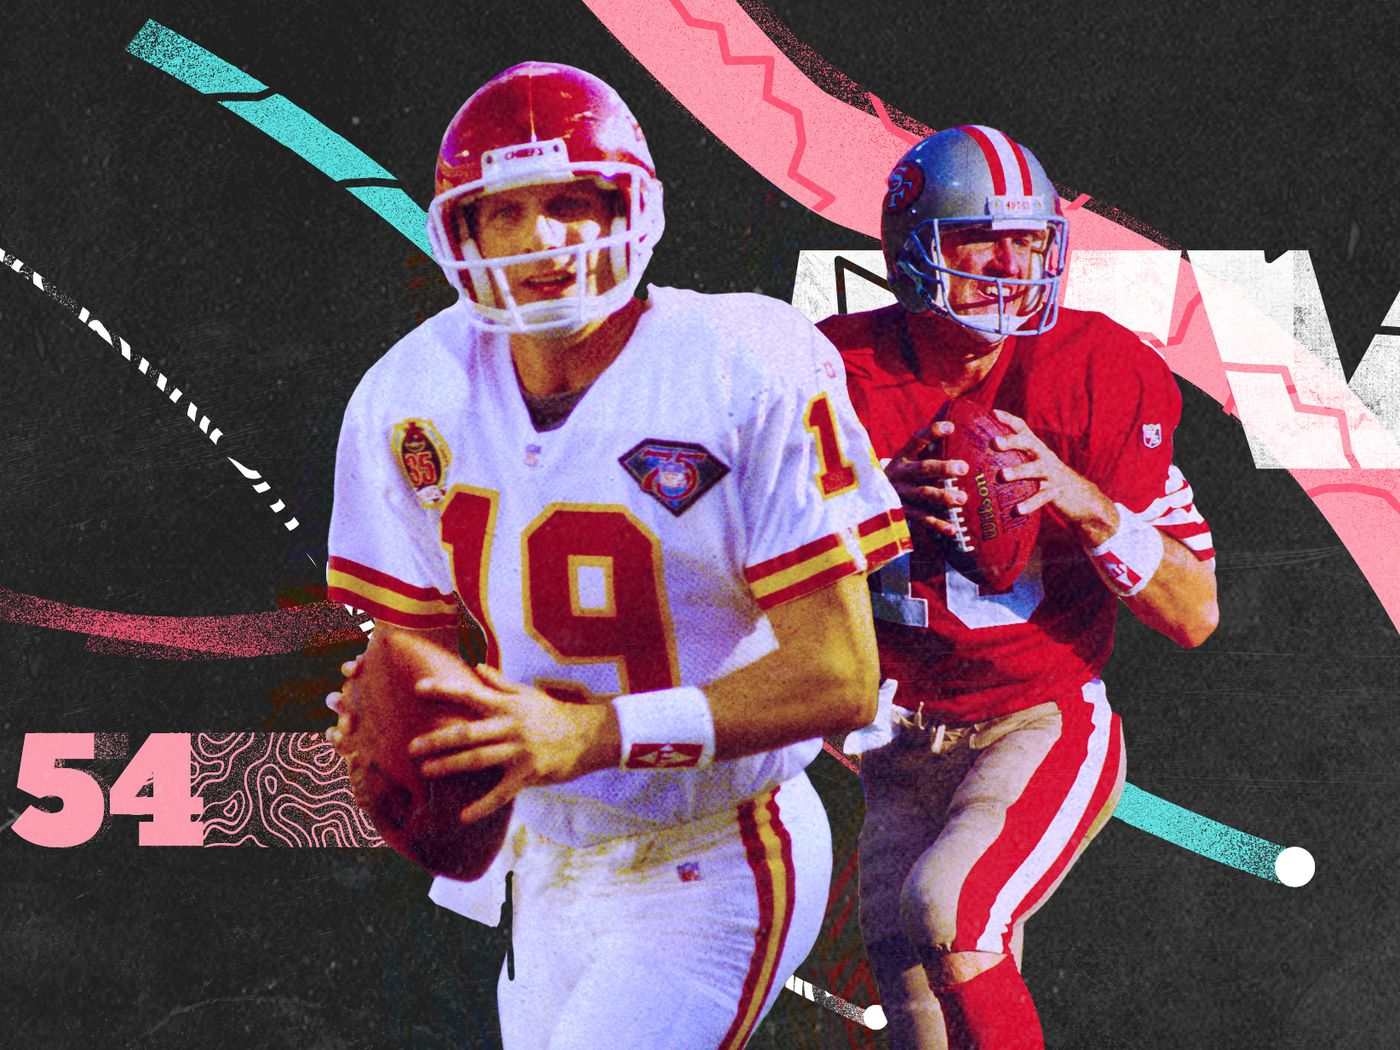 The 6 QBs who played for both the 49ers and Chiefs sorted by tier 1400x1050